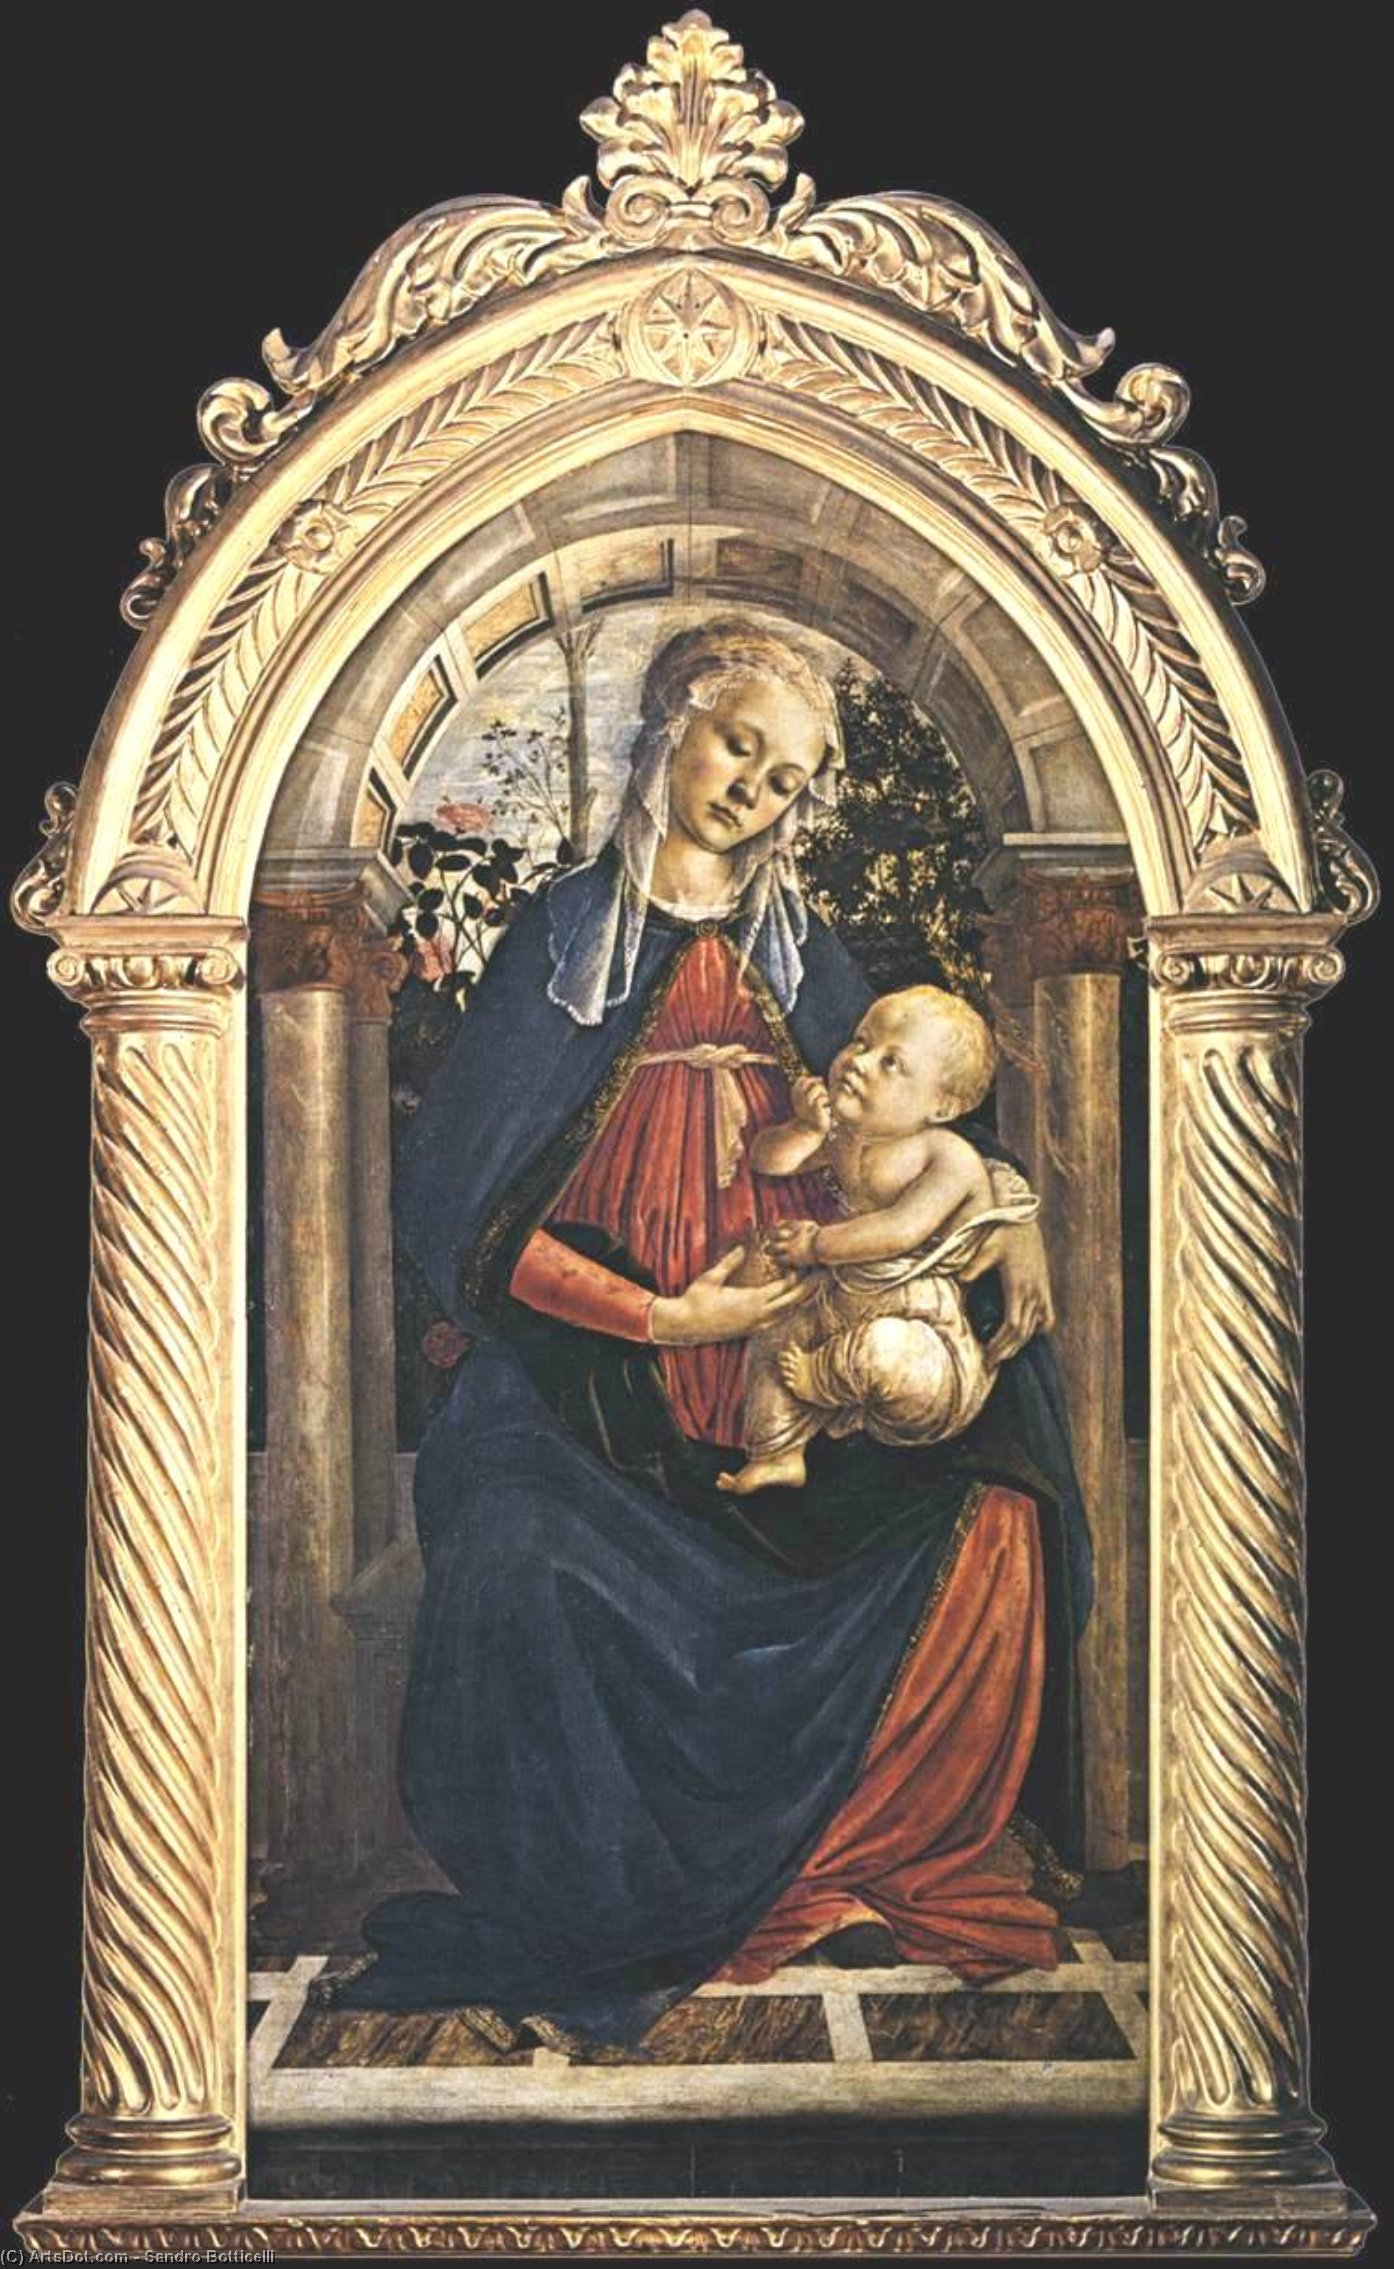 Wikioo.org - The Encyclopedia of Fine Arts - Painting, Artwork by Sandro Botticelli - Madonna of the Rosengarden (also known as Madonna del Roseto)